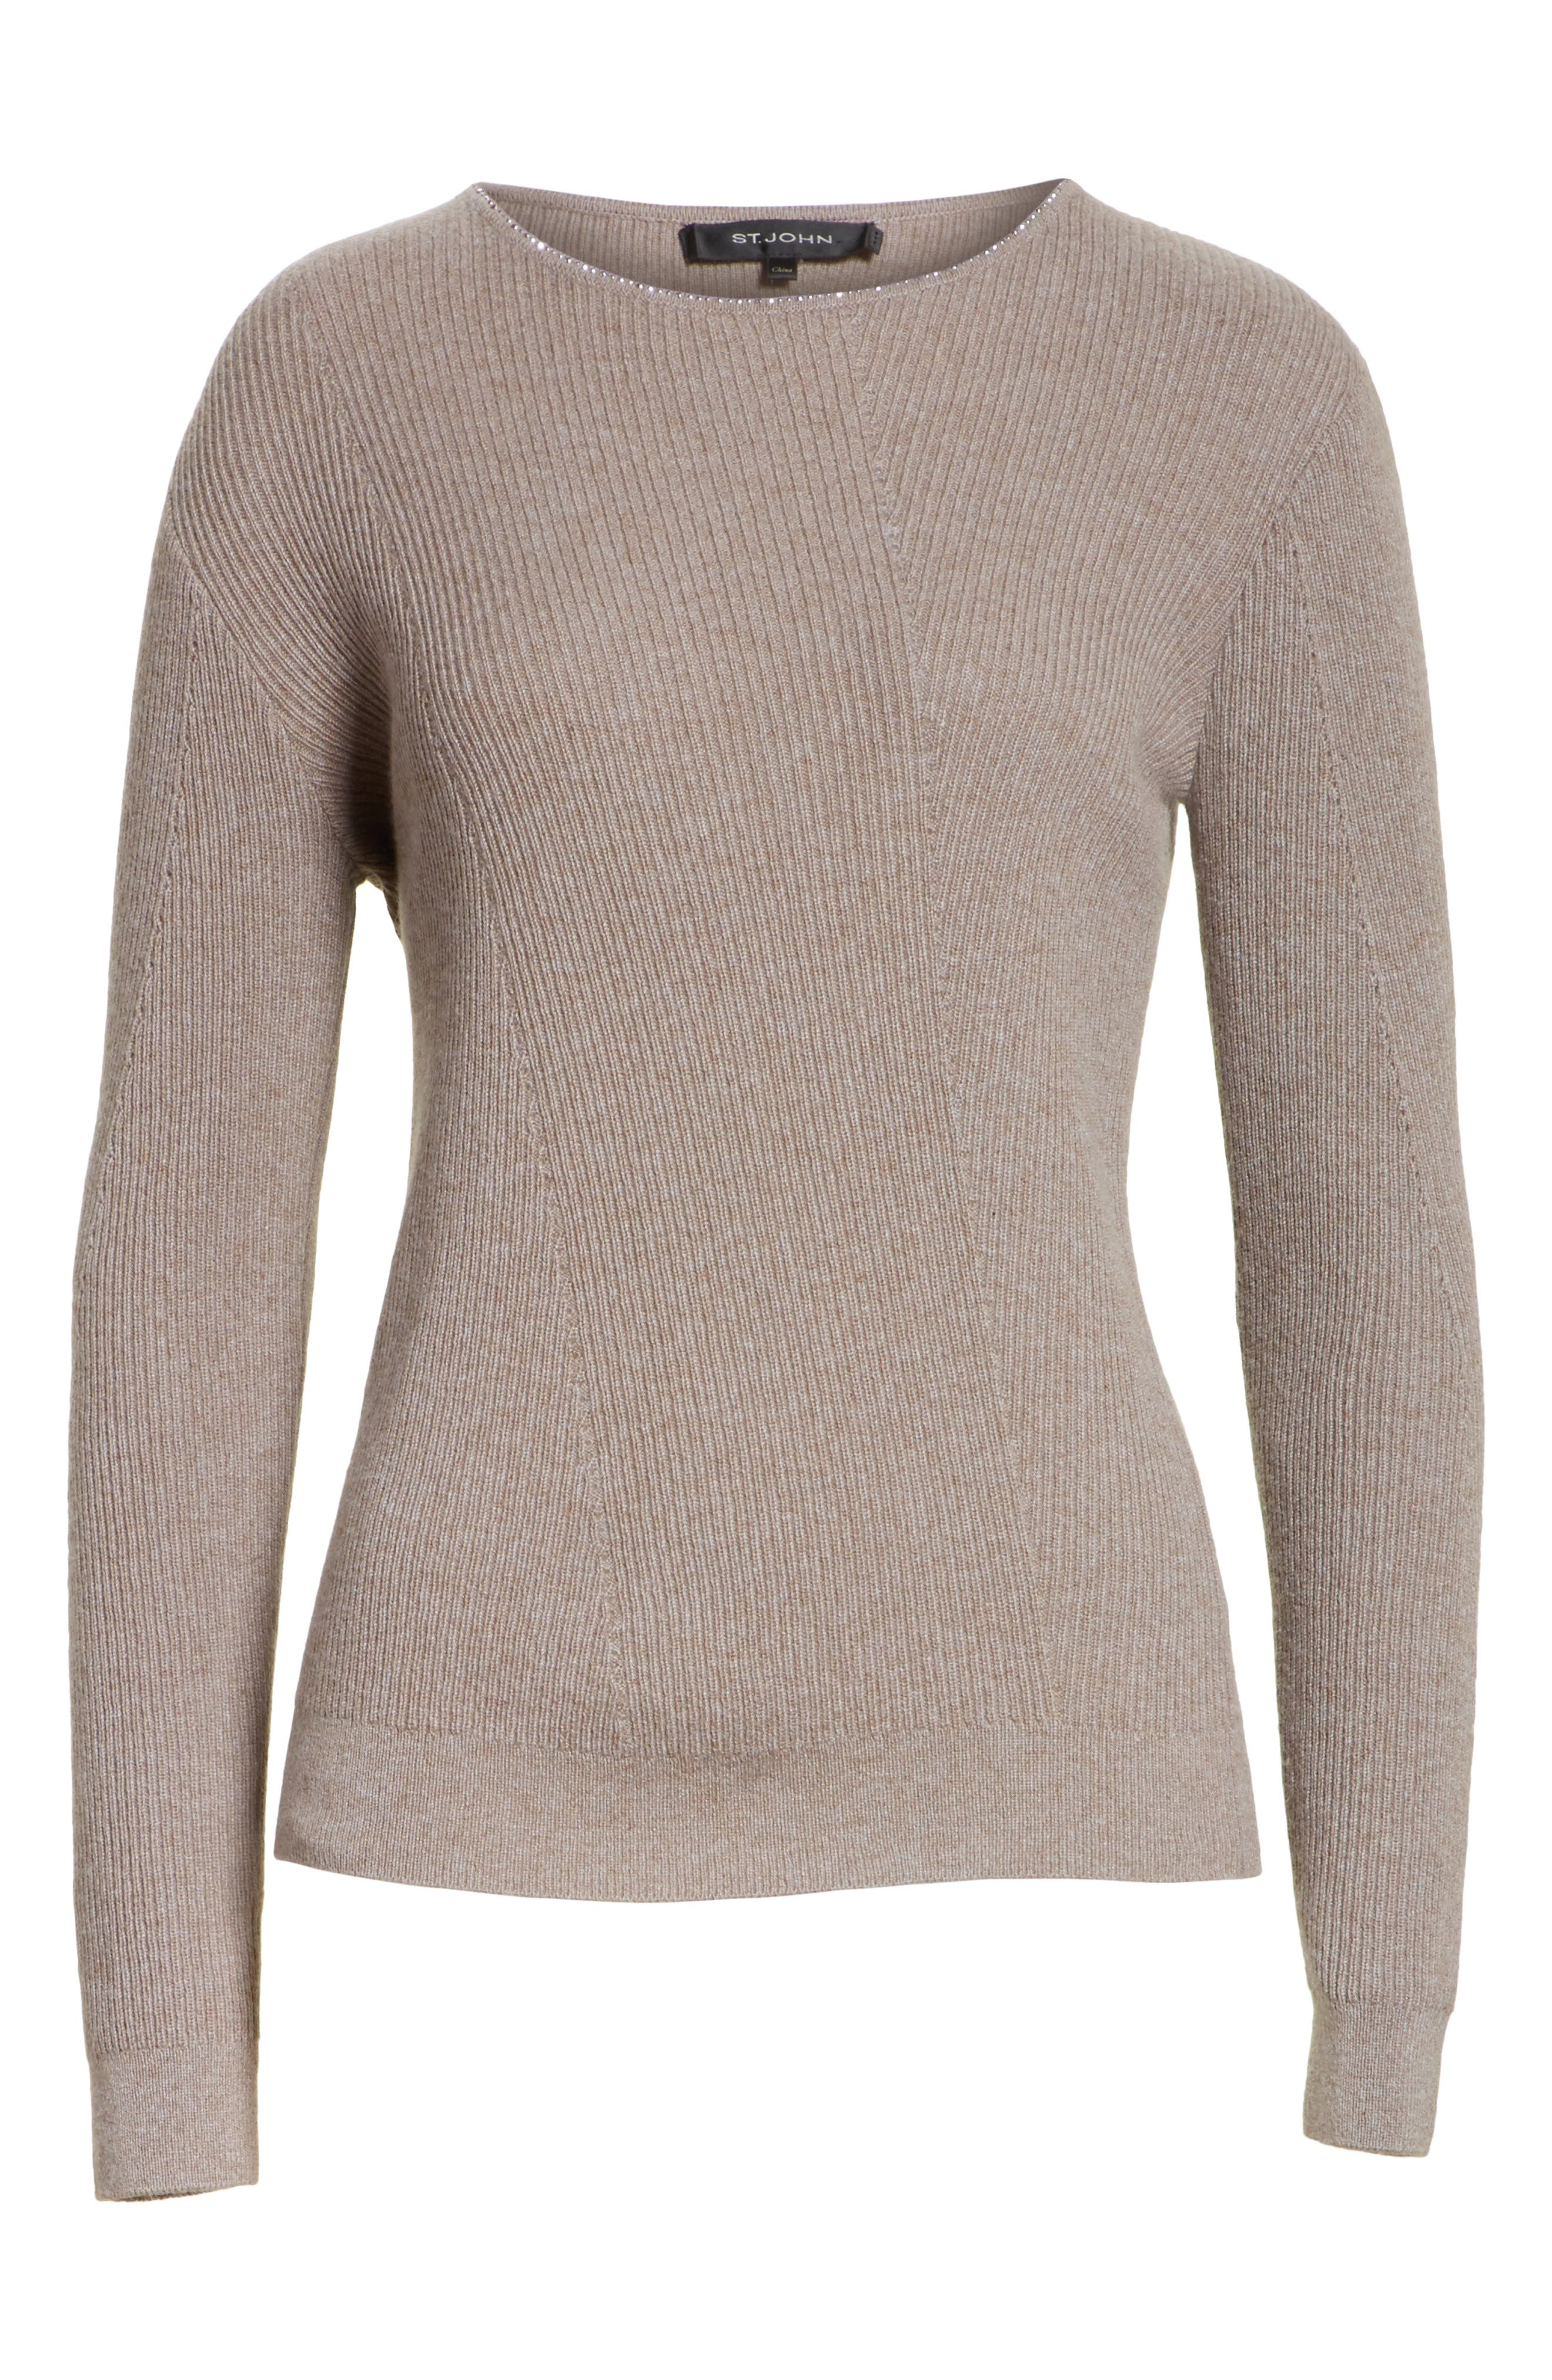 Cashmere Sweater,                             Alternate thumbnail 6, color,                             030